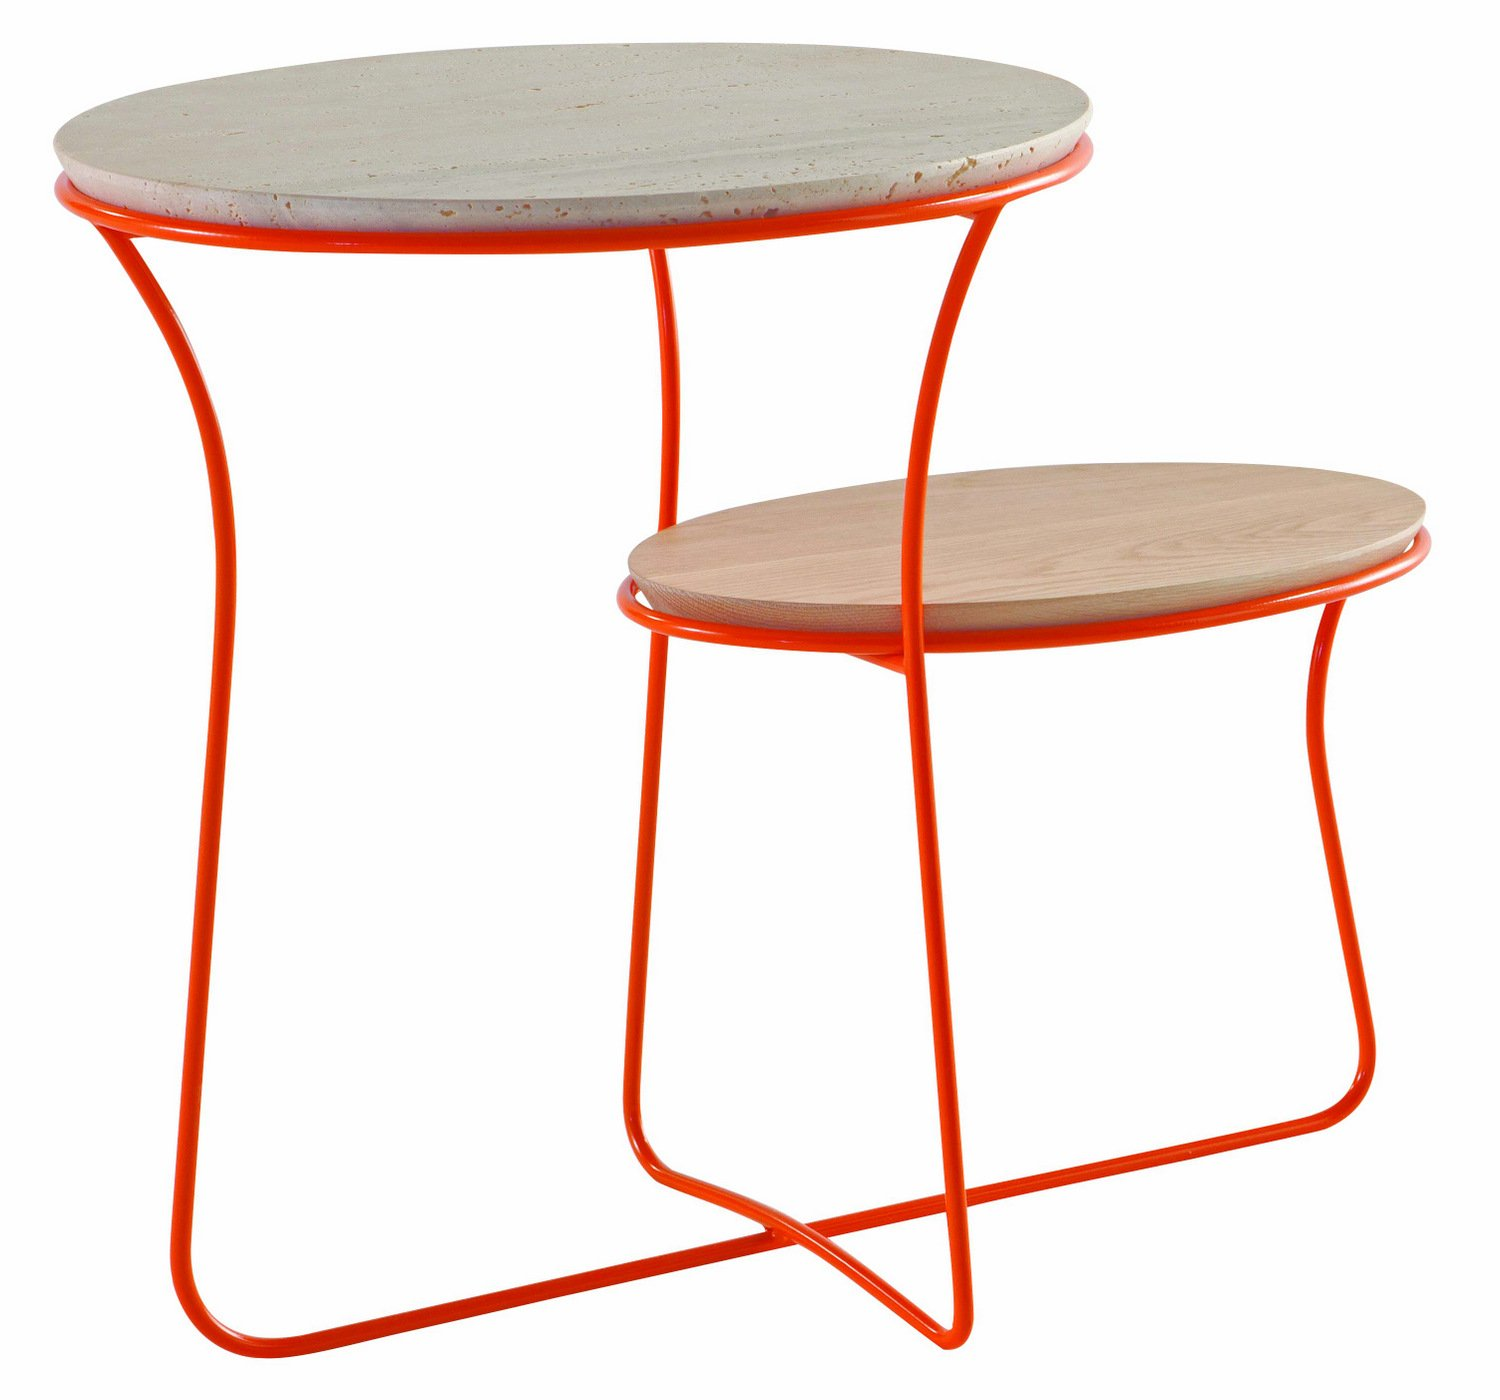 Coffee table oris by roche bobois design christophe delcourt - Table roche et bobois ...